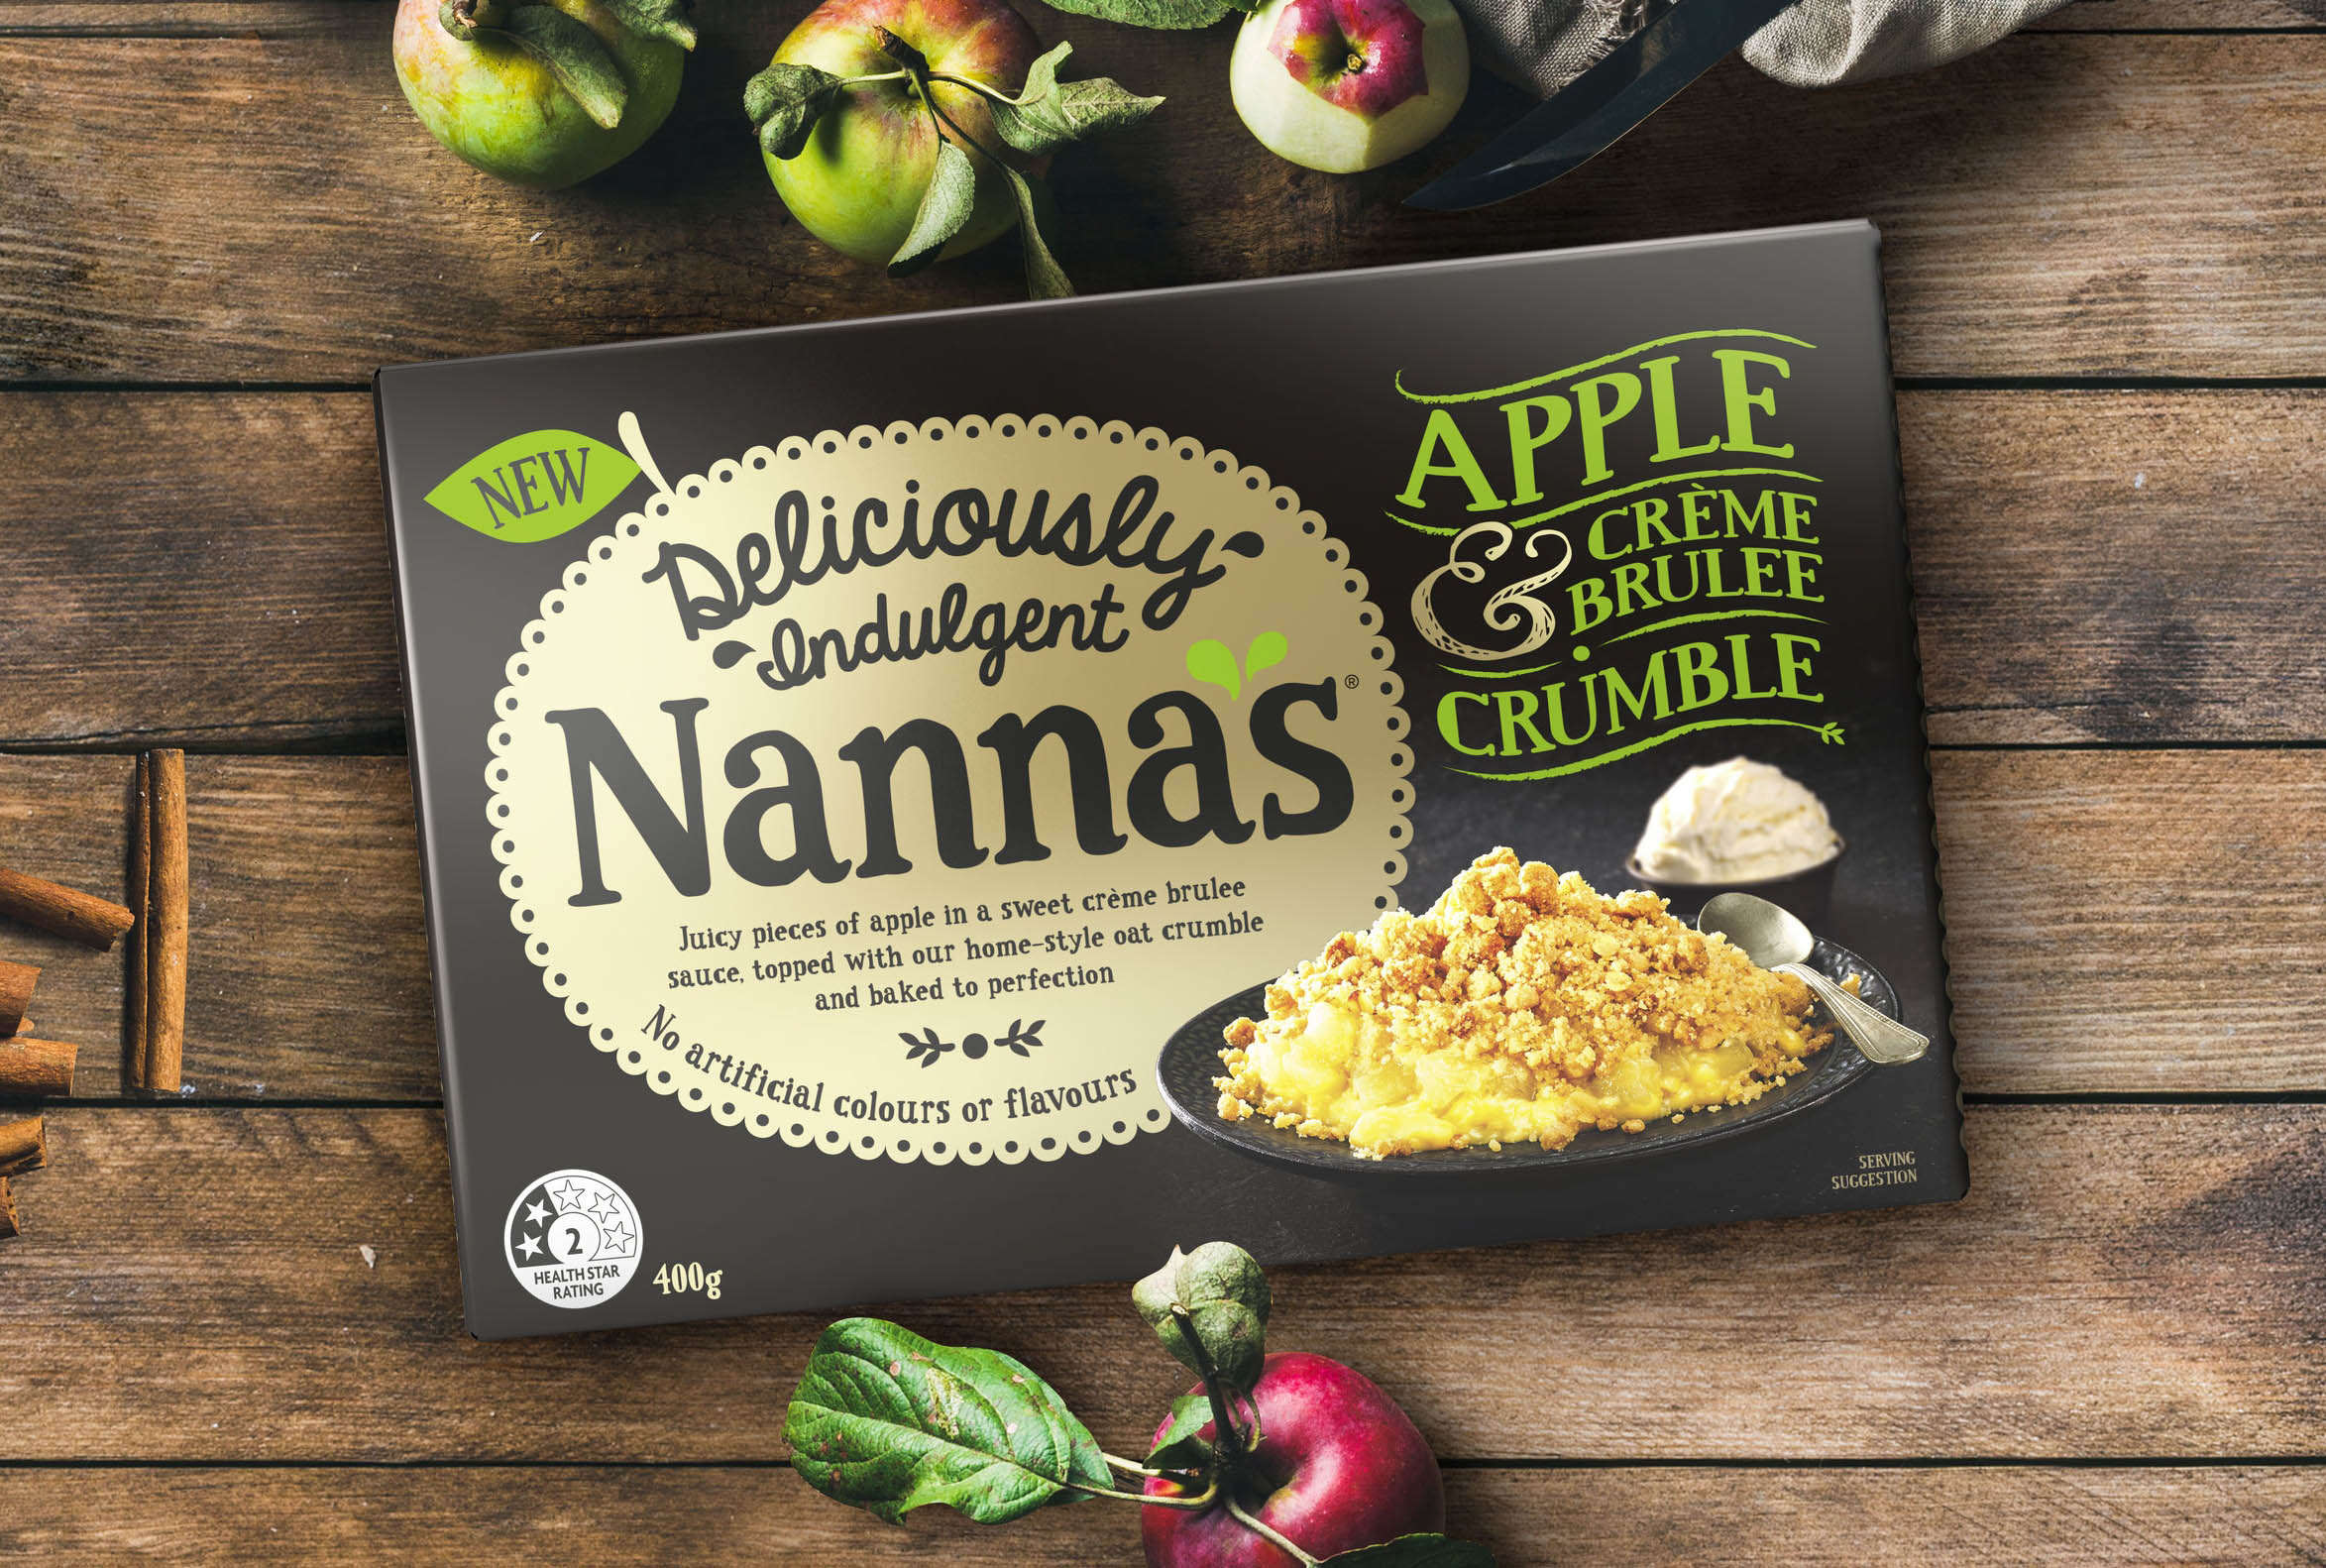 Nannas_single-editorial_range_premium-crumble_brulee-1_Lr.jpg